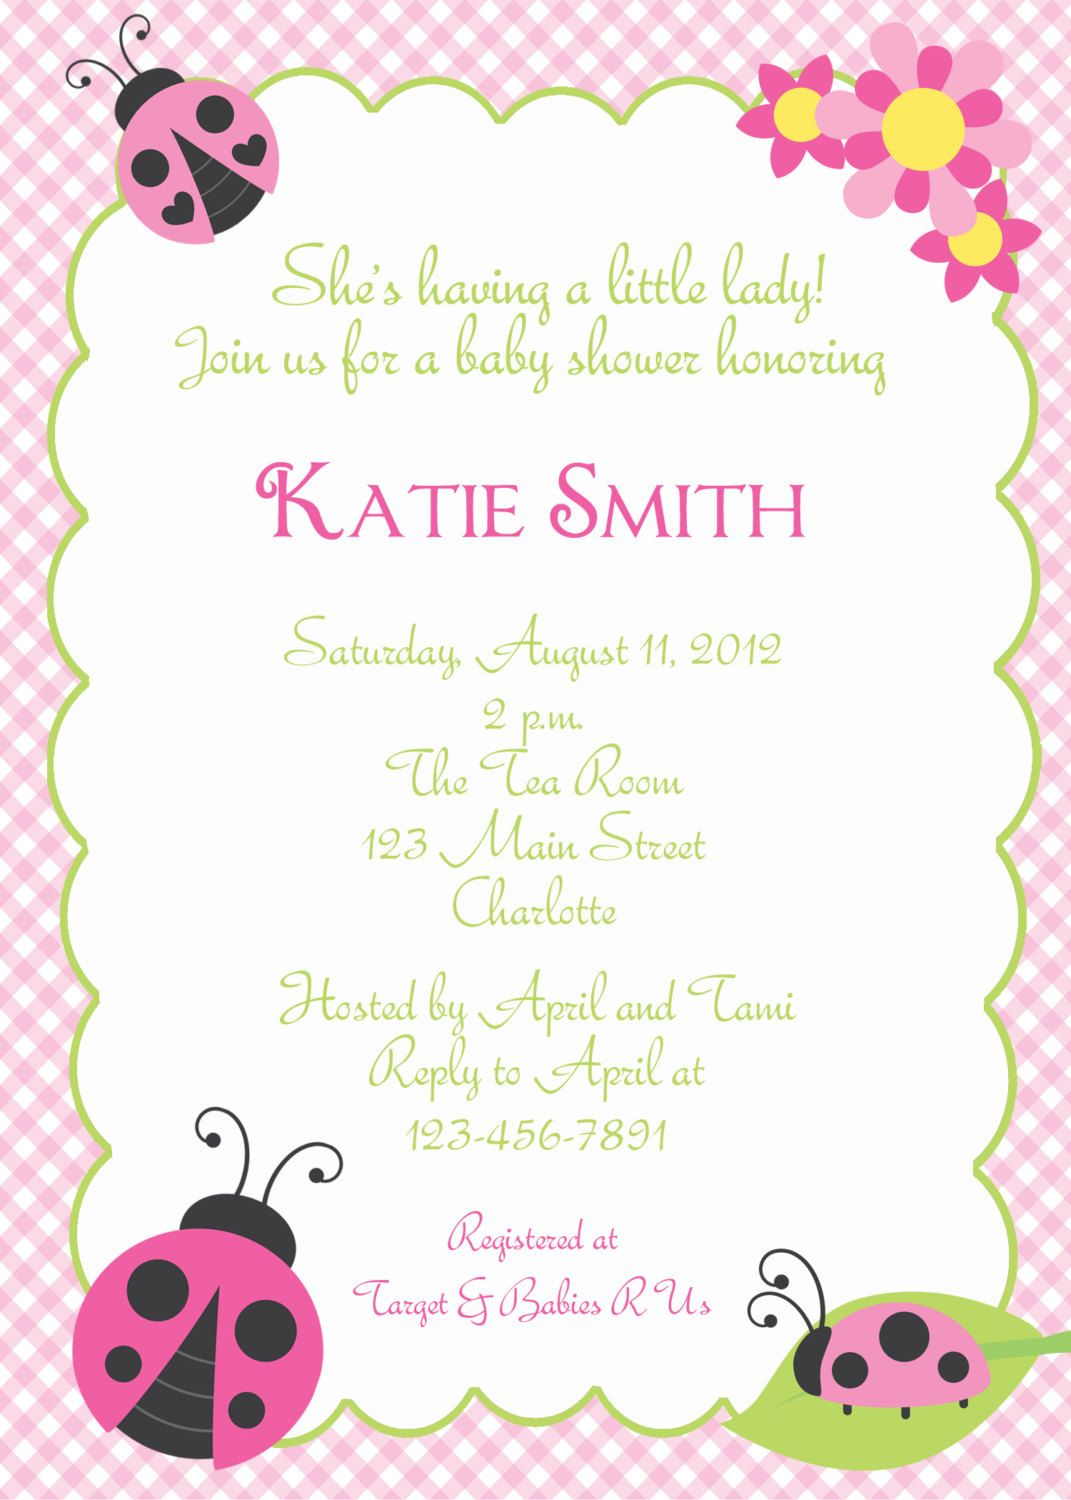 Ladybug Baby Shower invitation | Baby Shower Ideas | Pinterest ...